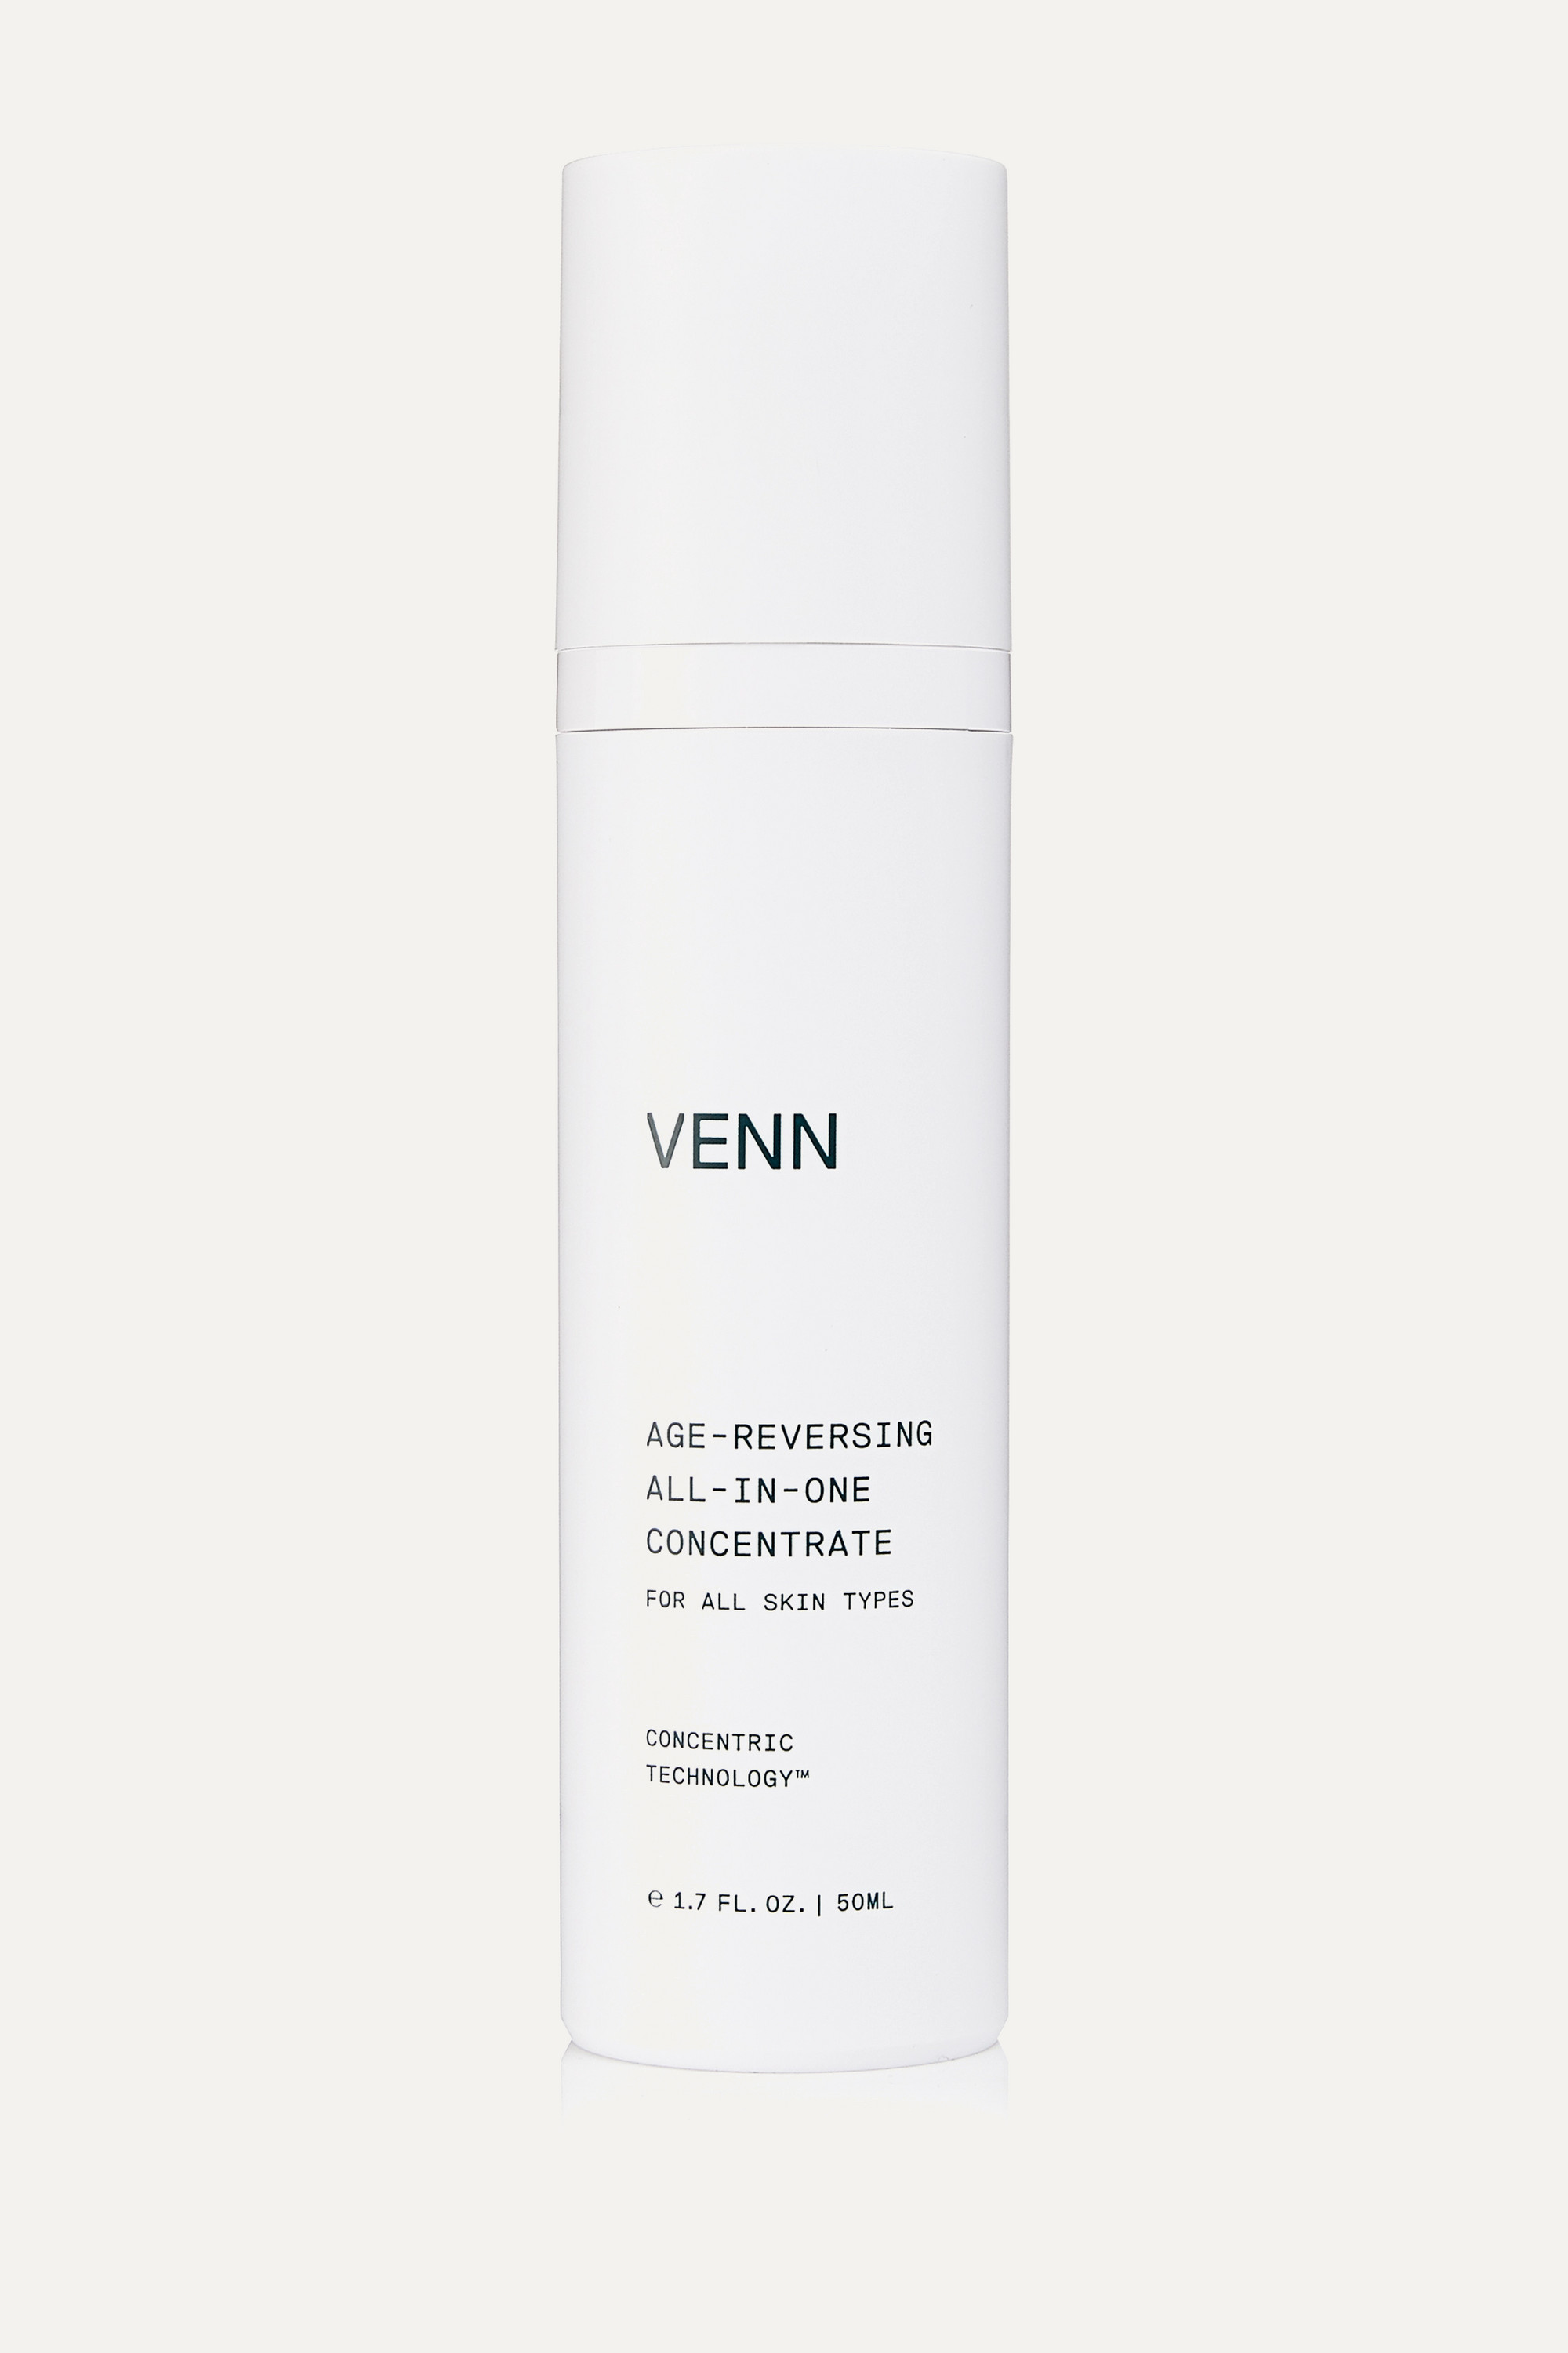 VENN Age-Reversing All-In-One Concentrate, 50ml